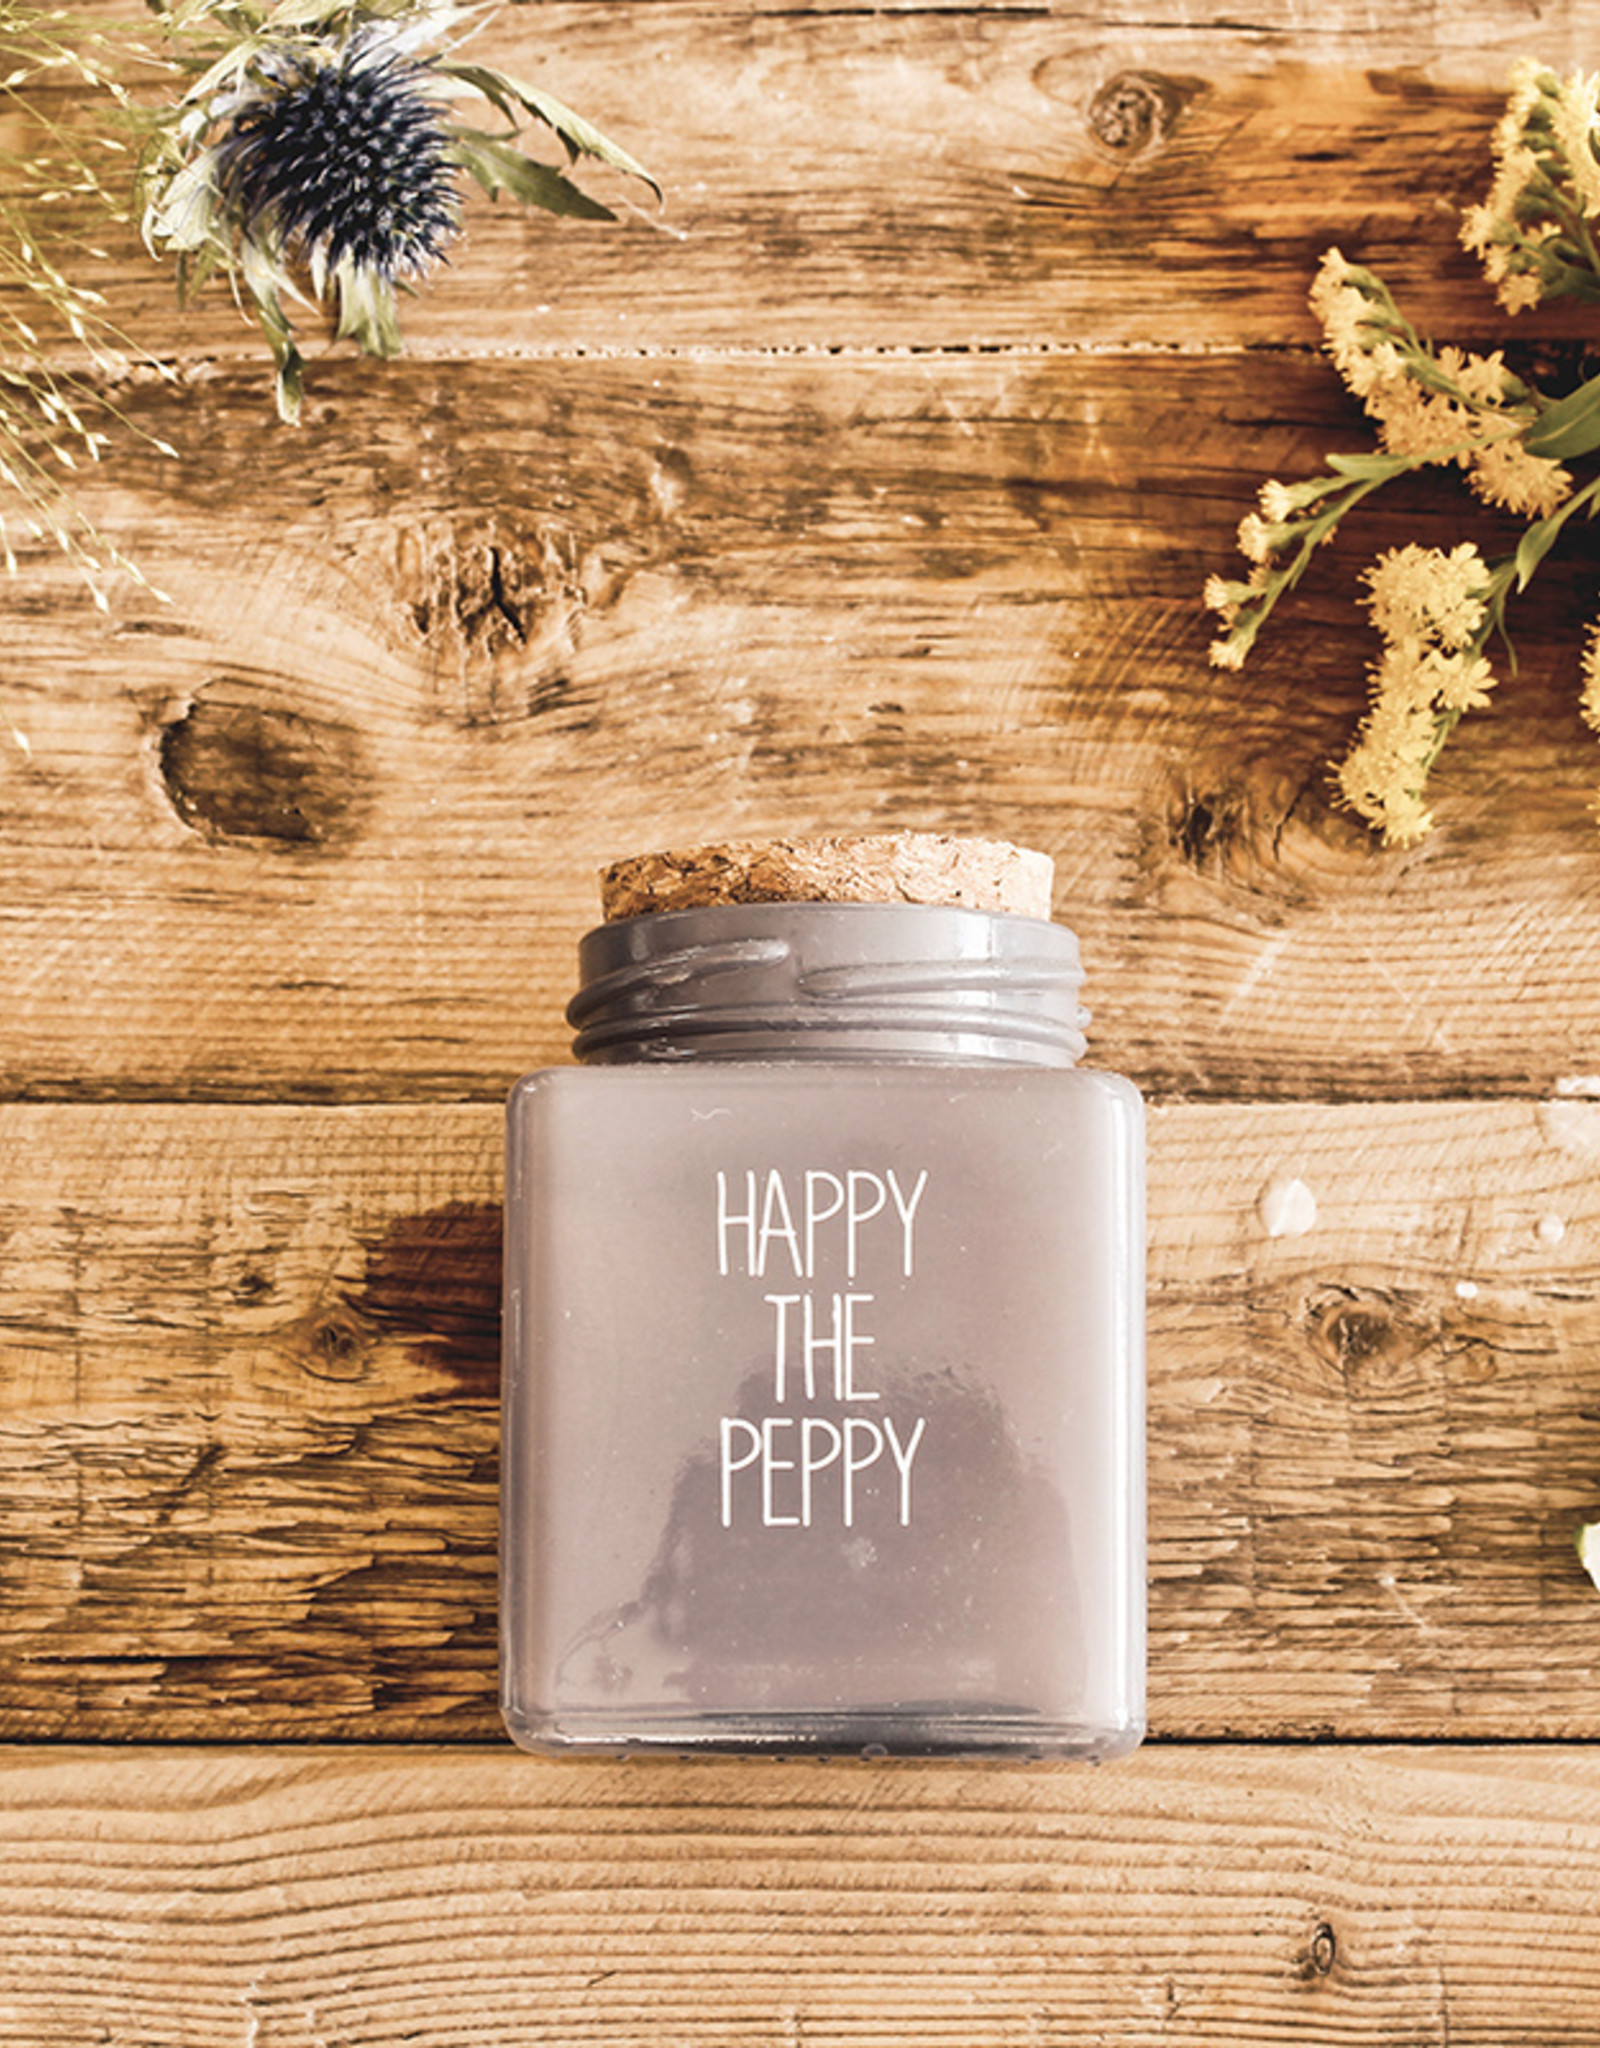 My flame Lifestyle Sojakaars | Happy The Peppy | Geur: Amber's secret